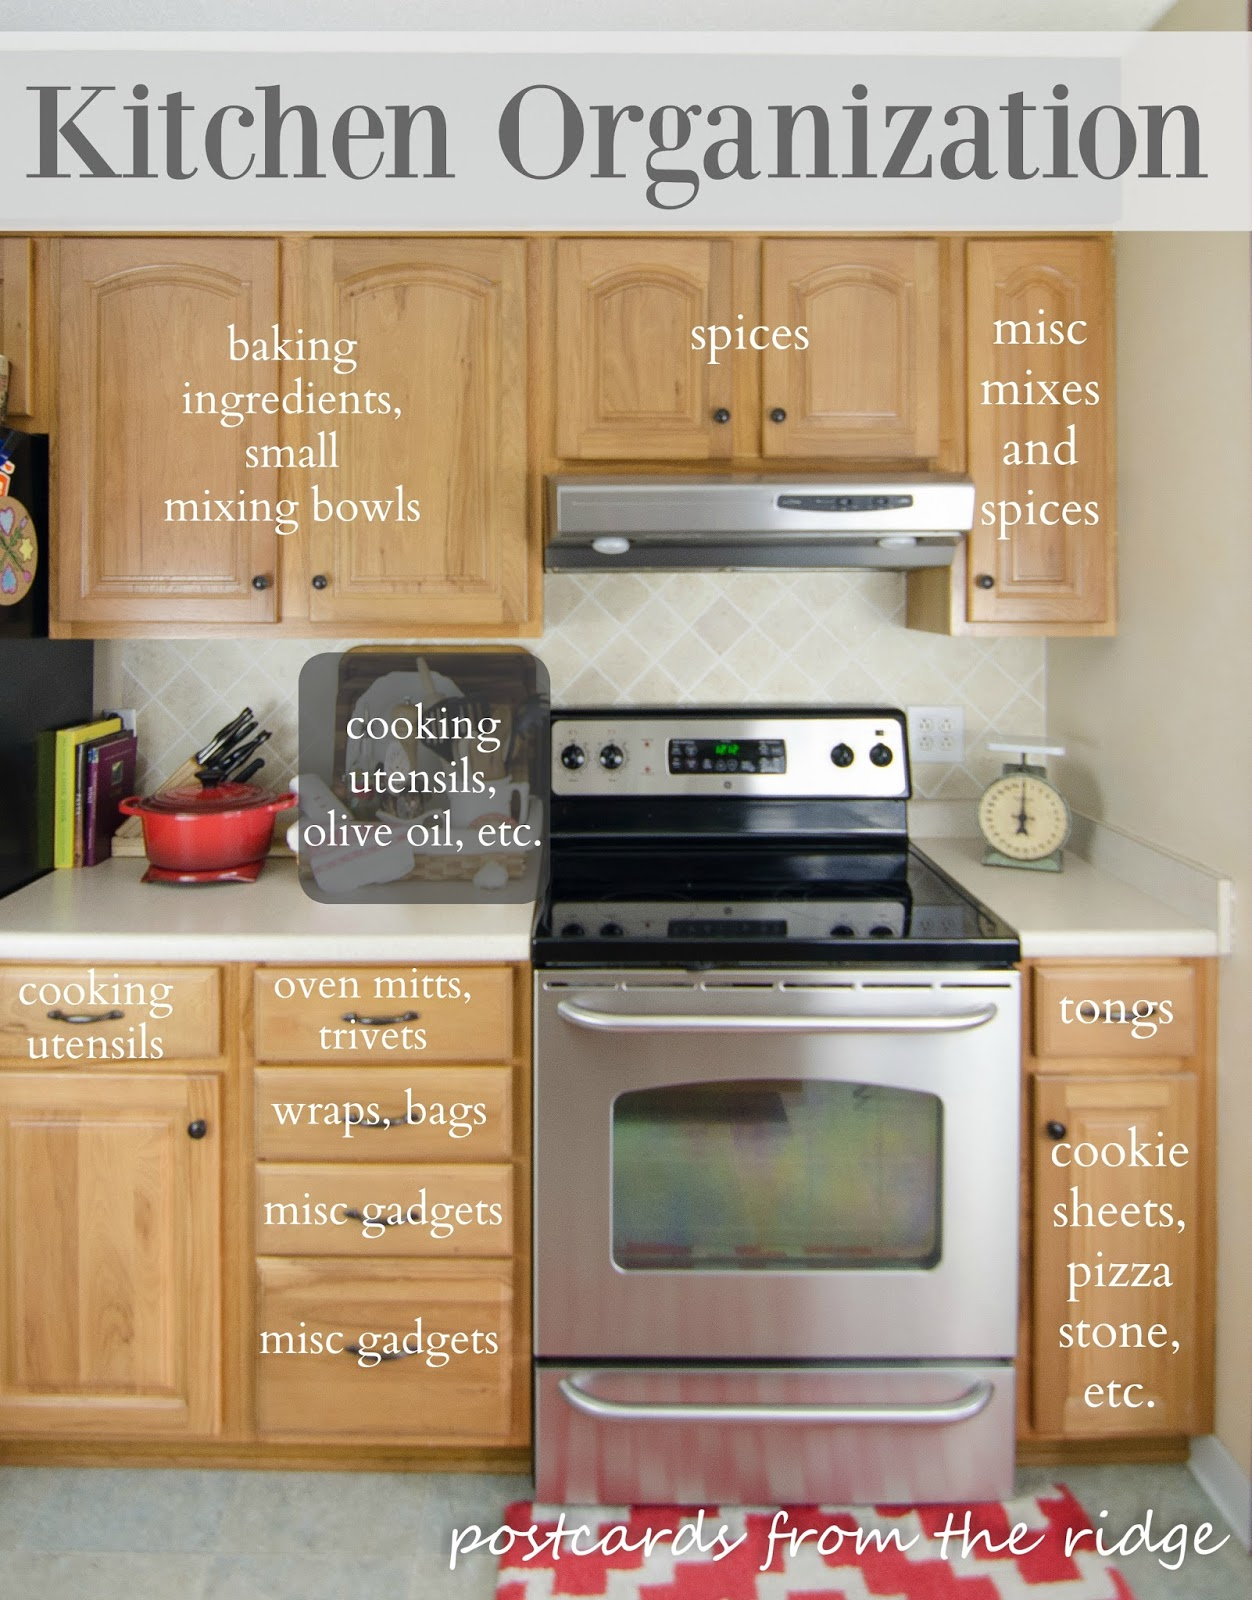 Kitchen organization tips postcards from the ridge for Kitchen organization ideas